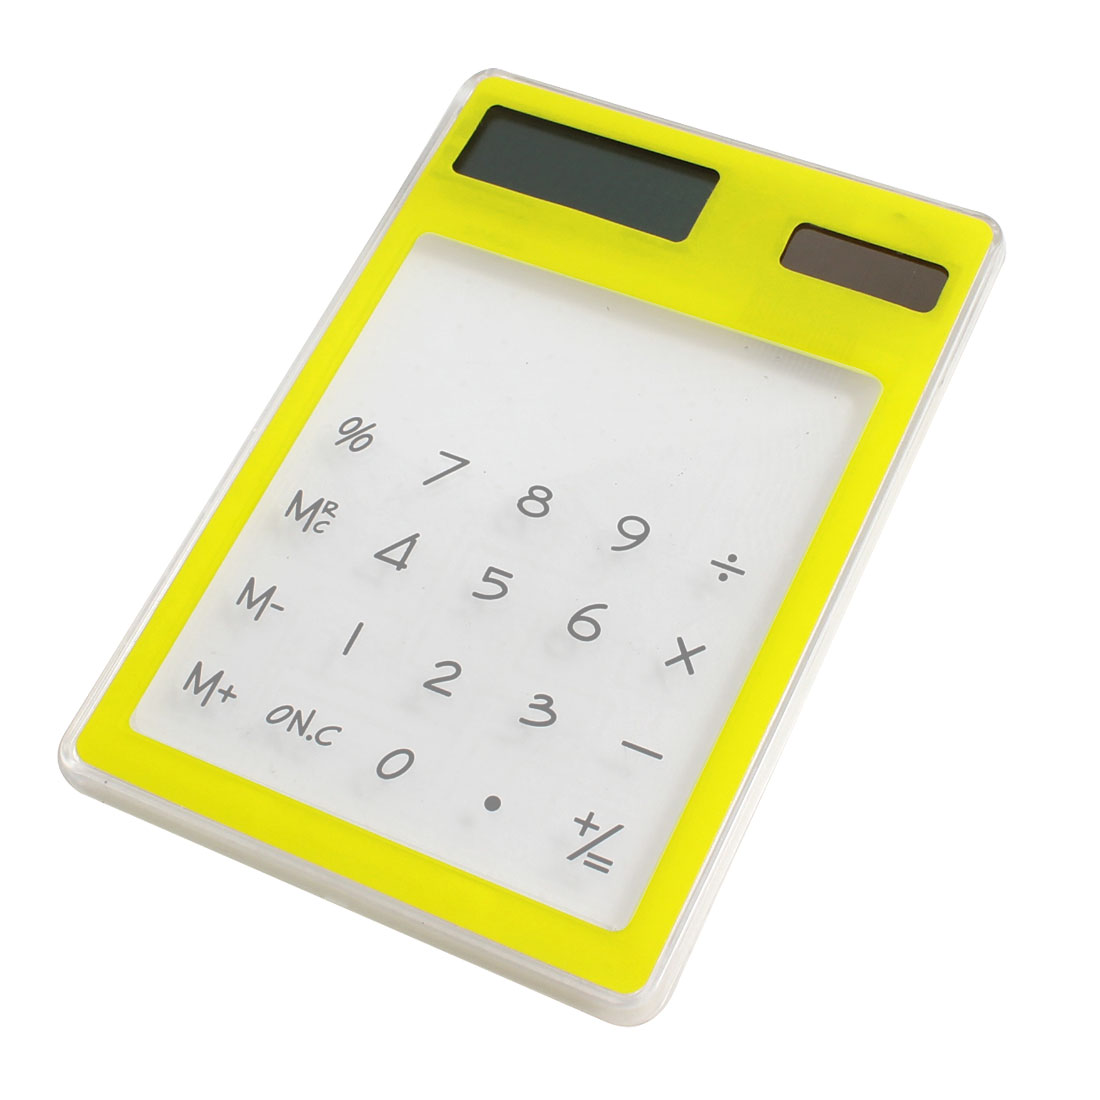 Home Office Rectangle Shaped Yellow Clear Flat Touch Solar Power Calculator